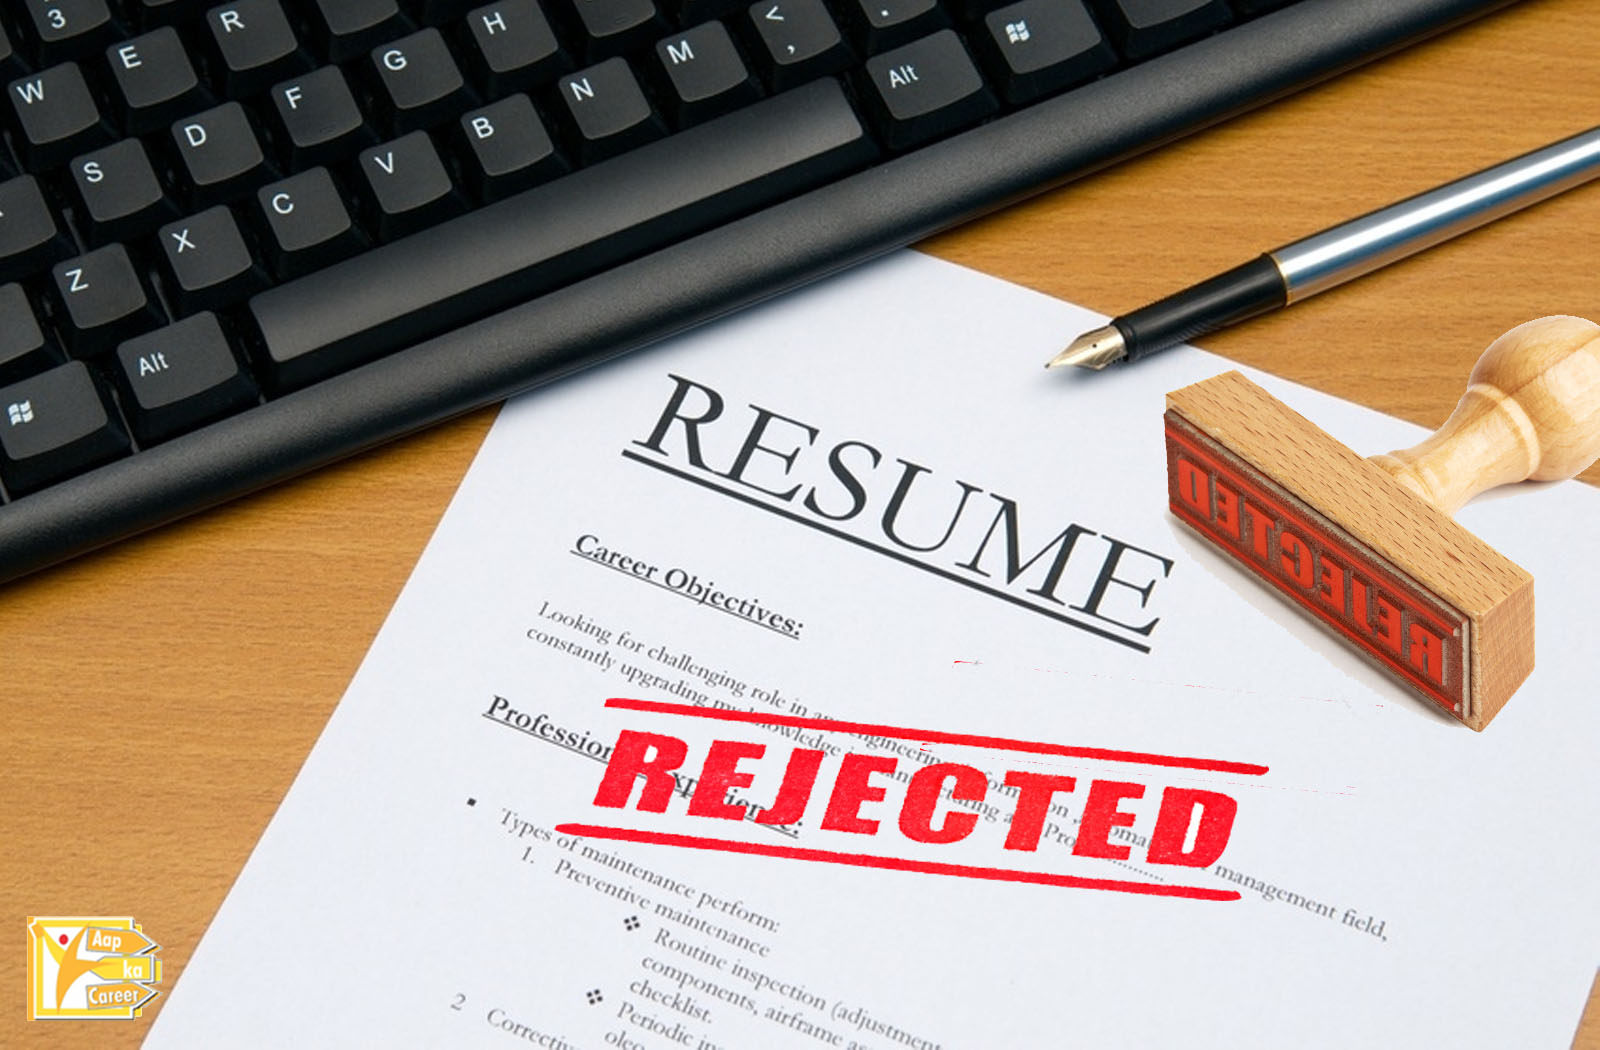 should education or work experience come first on a resume